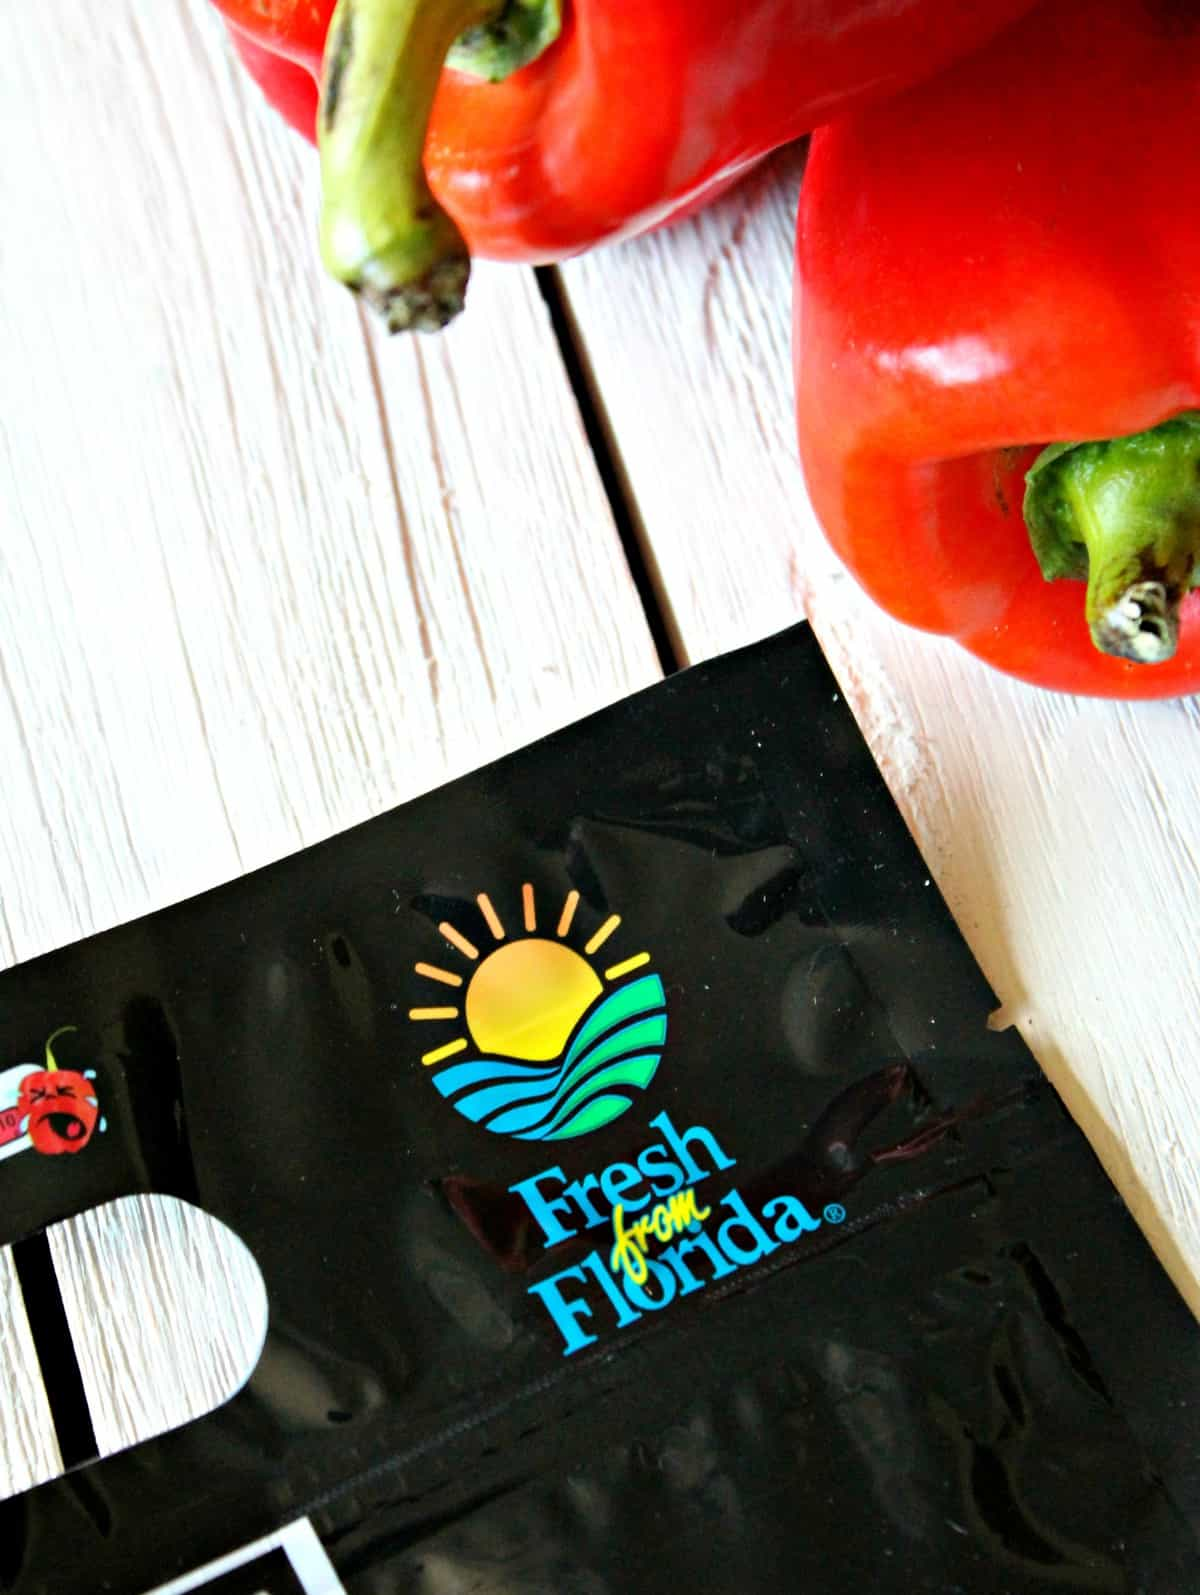 Fresh from Florida produce is a great way to invest in local agriculture